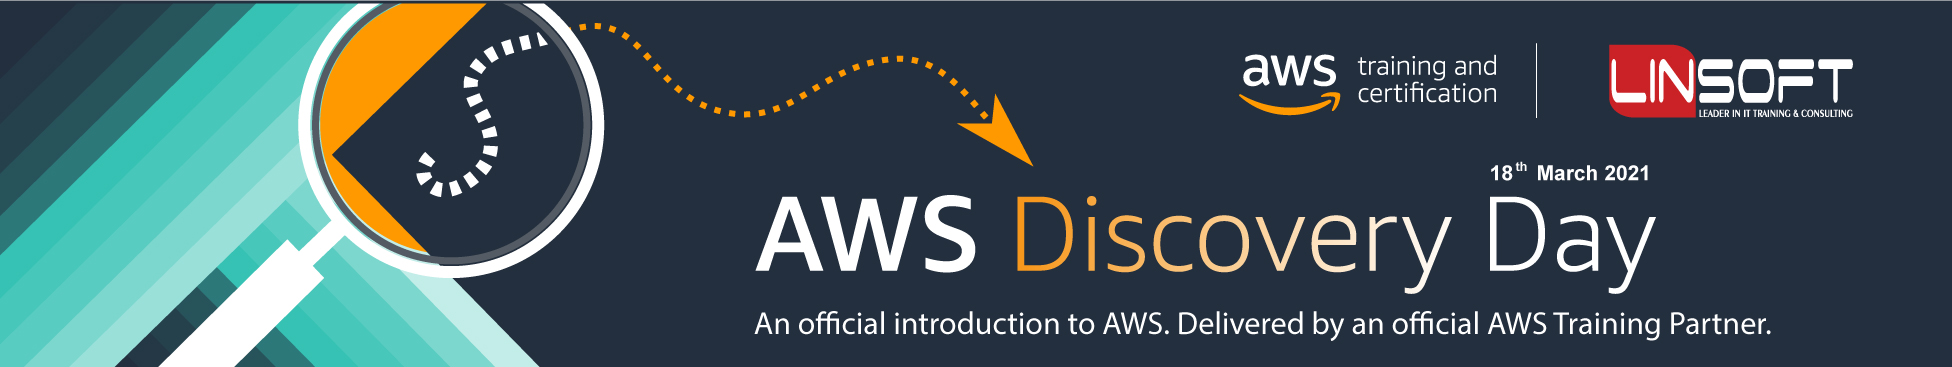 aws-discovery-day